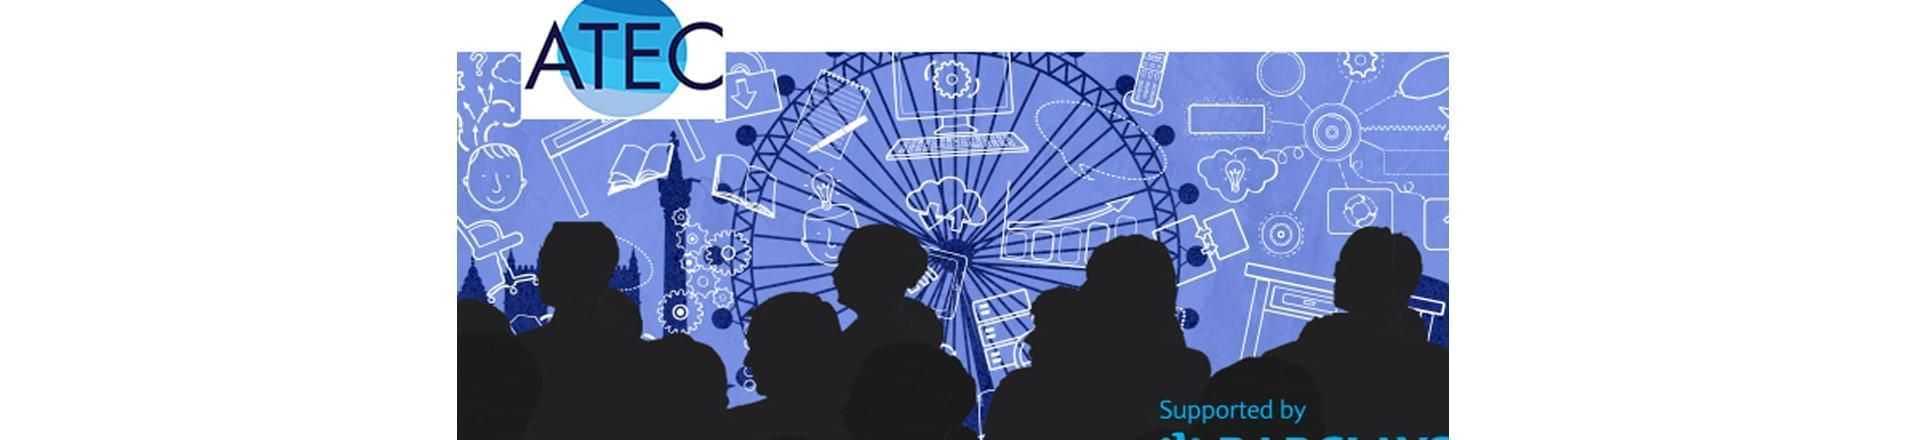 Silhouettes of people in front of the London Eye with Barclays logo in the bottom right hand corner and ATEC logo in the top left